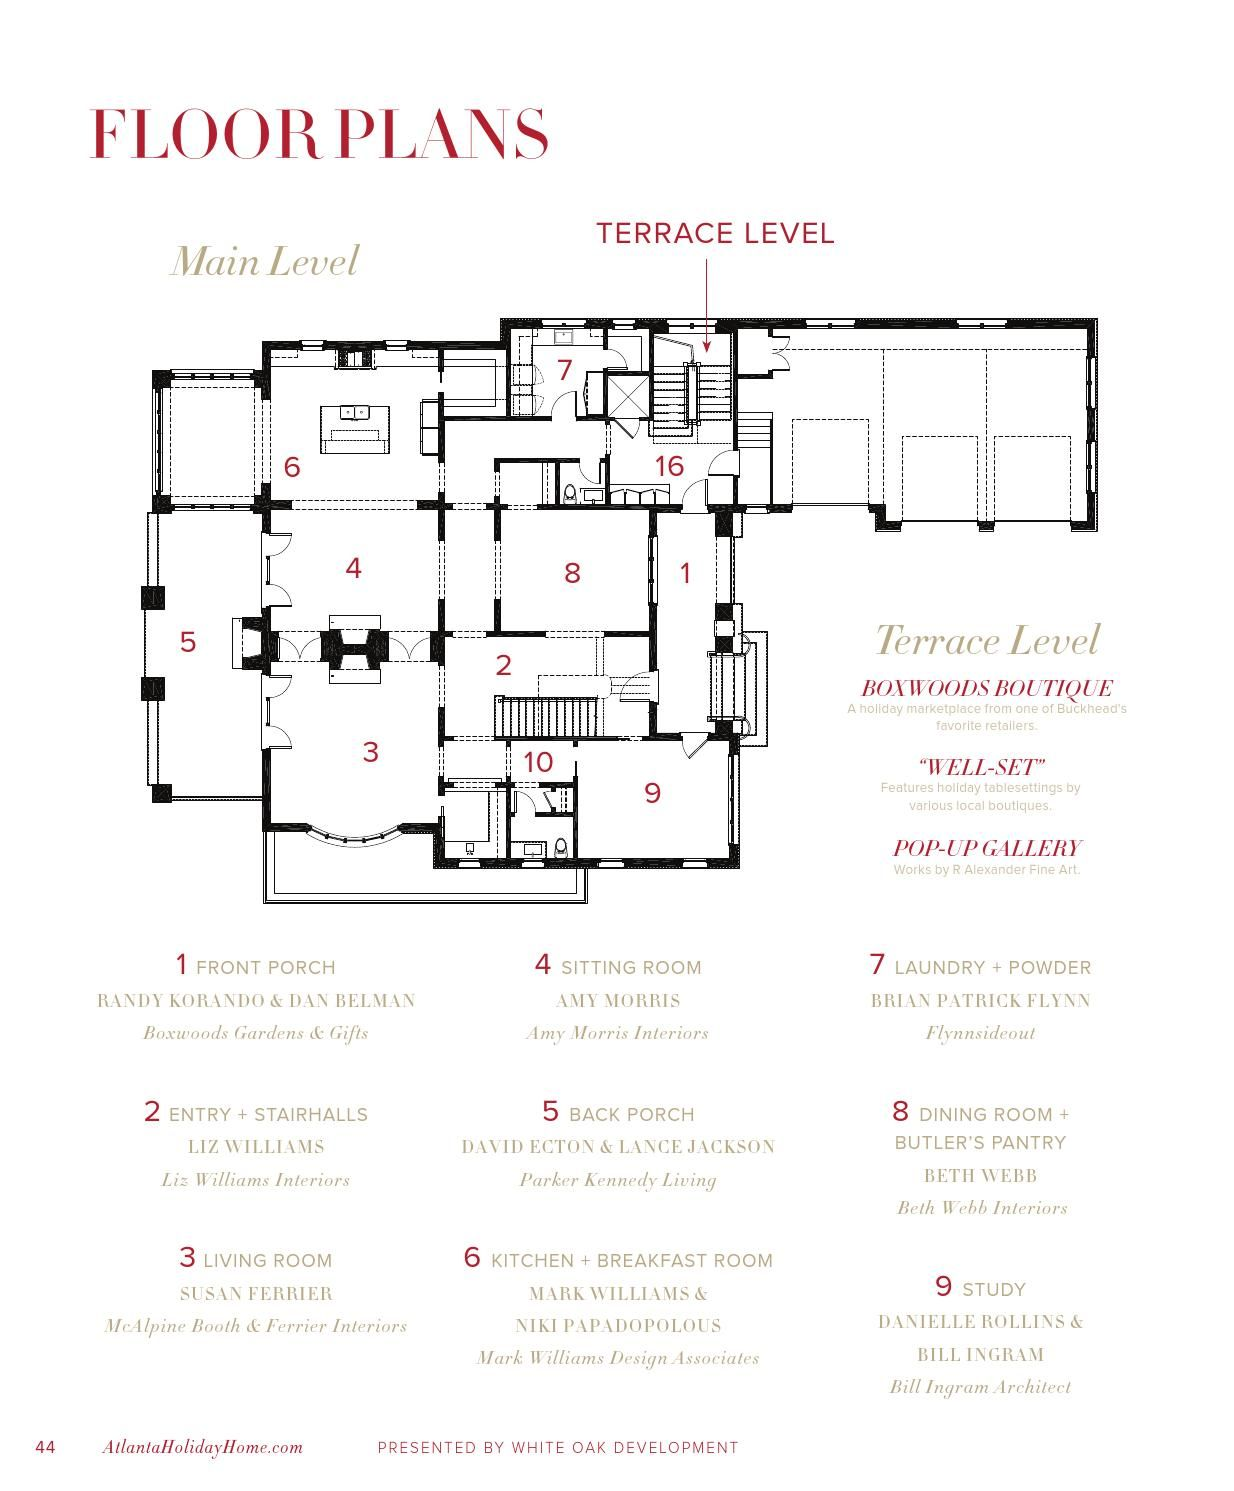 Atlanta homes lifestyles november 2014 issue elevation for Atlanta home plans